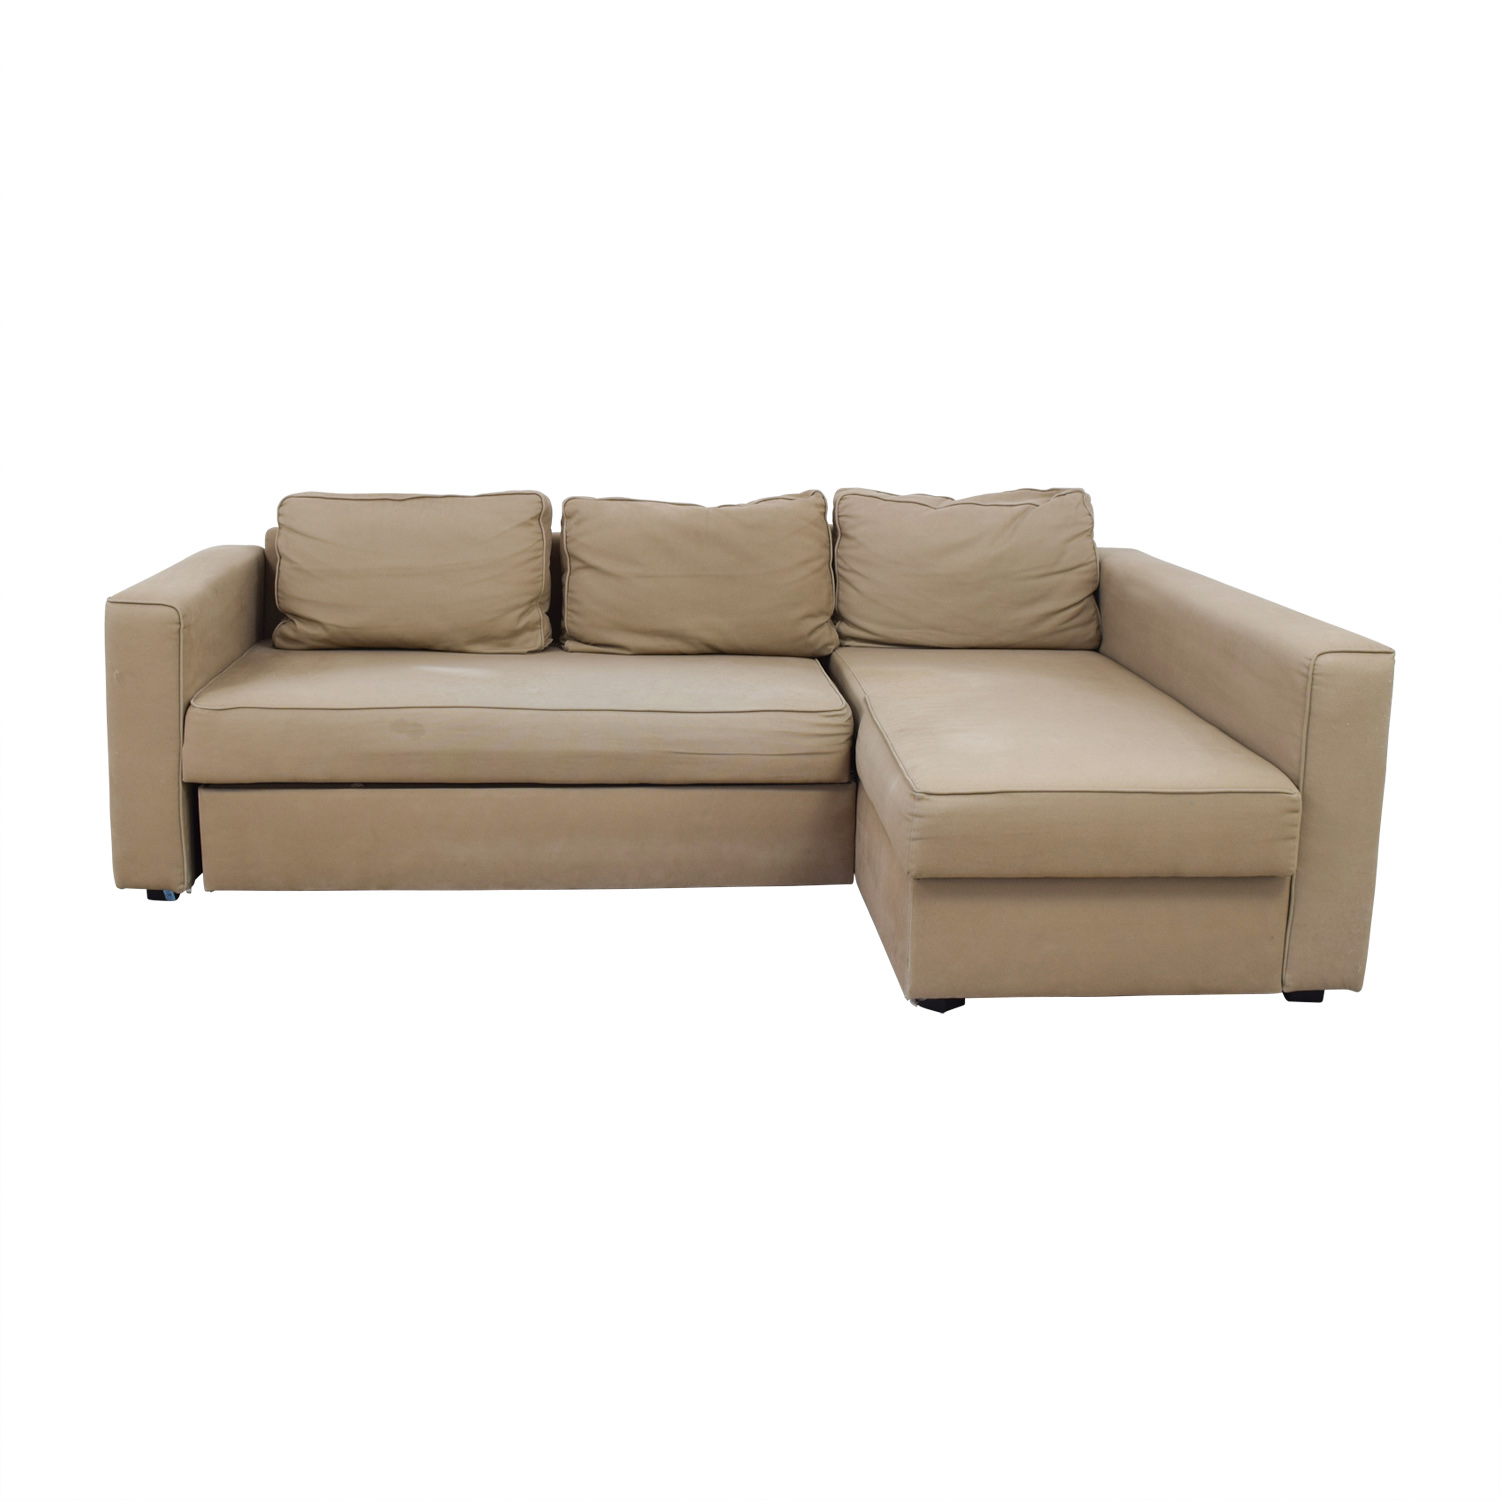 Ikea Manstad Sectional Sofa Bed